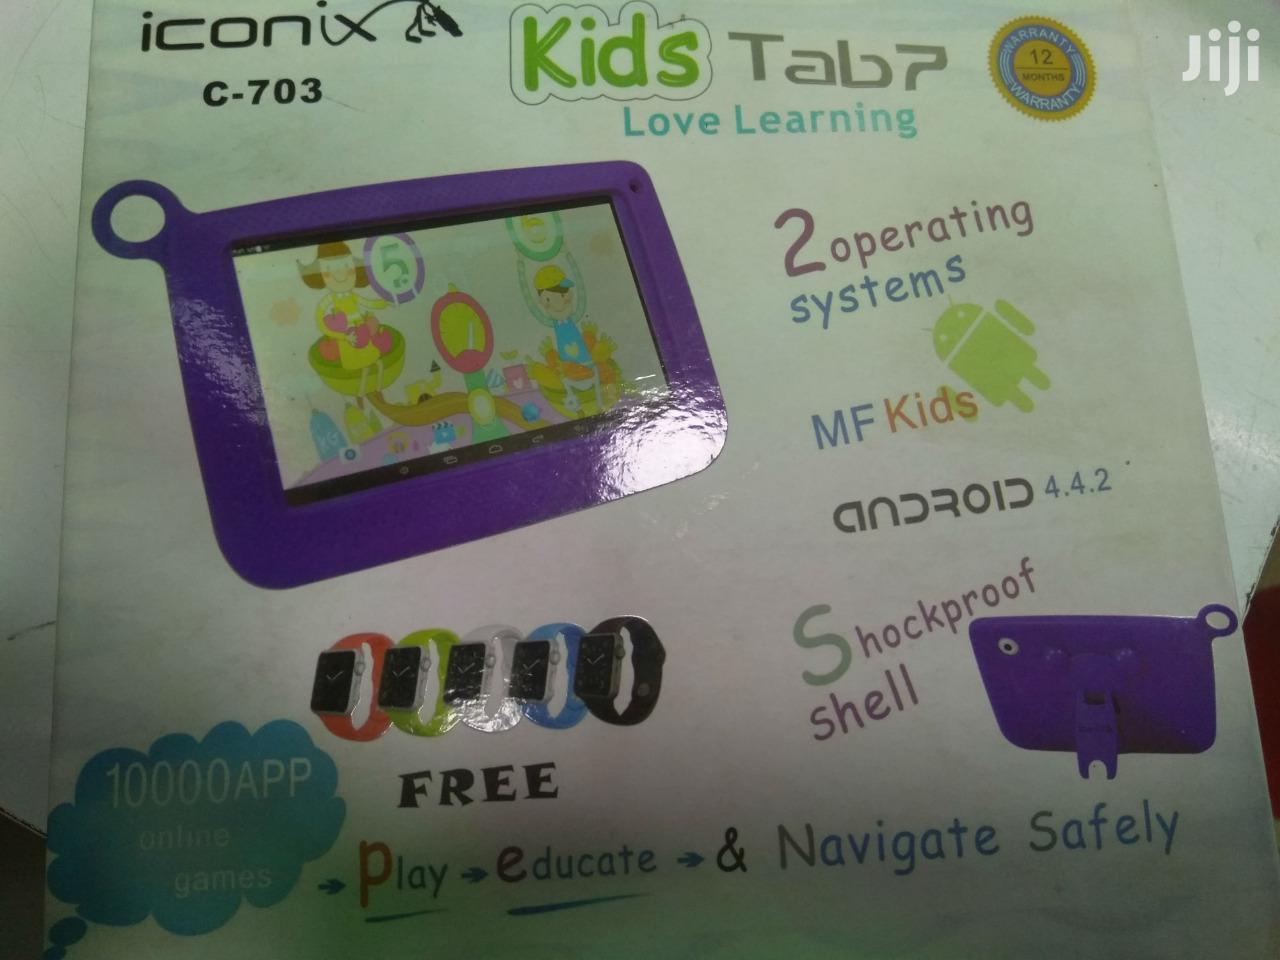 Kids Tablet Iconics 7.0 Inch - Android 5.1 Kids Tablet